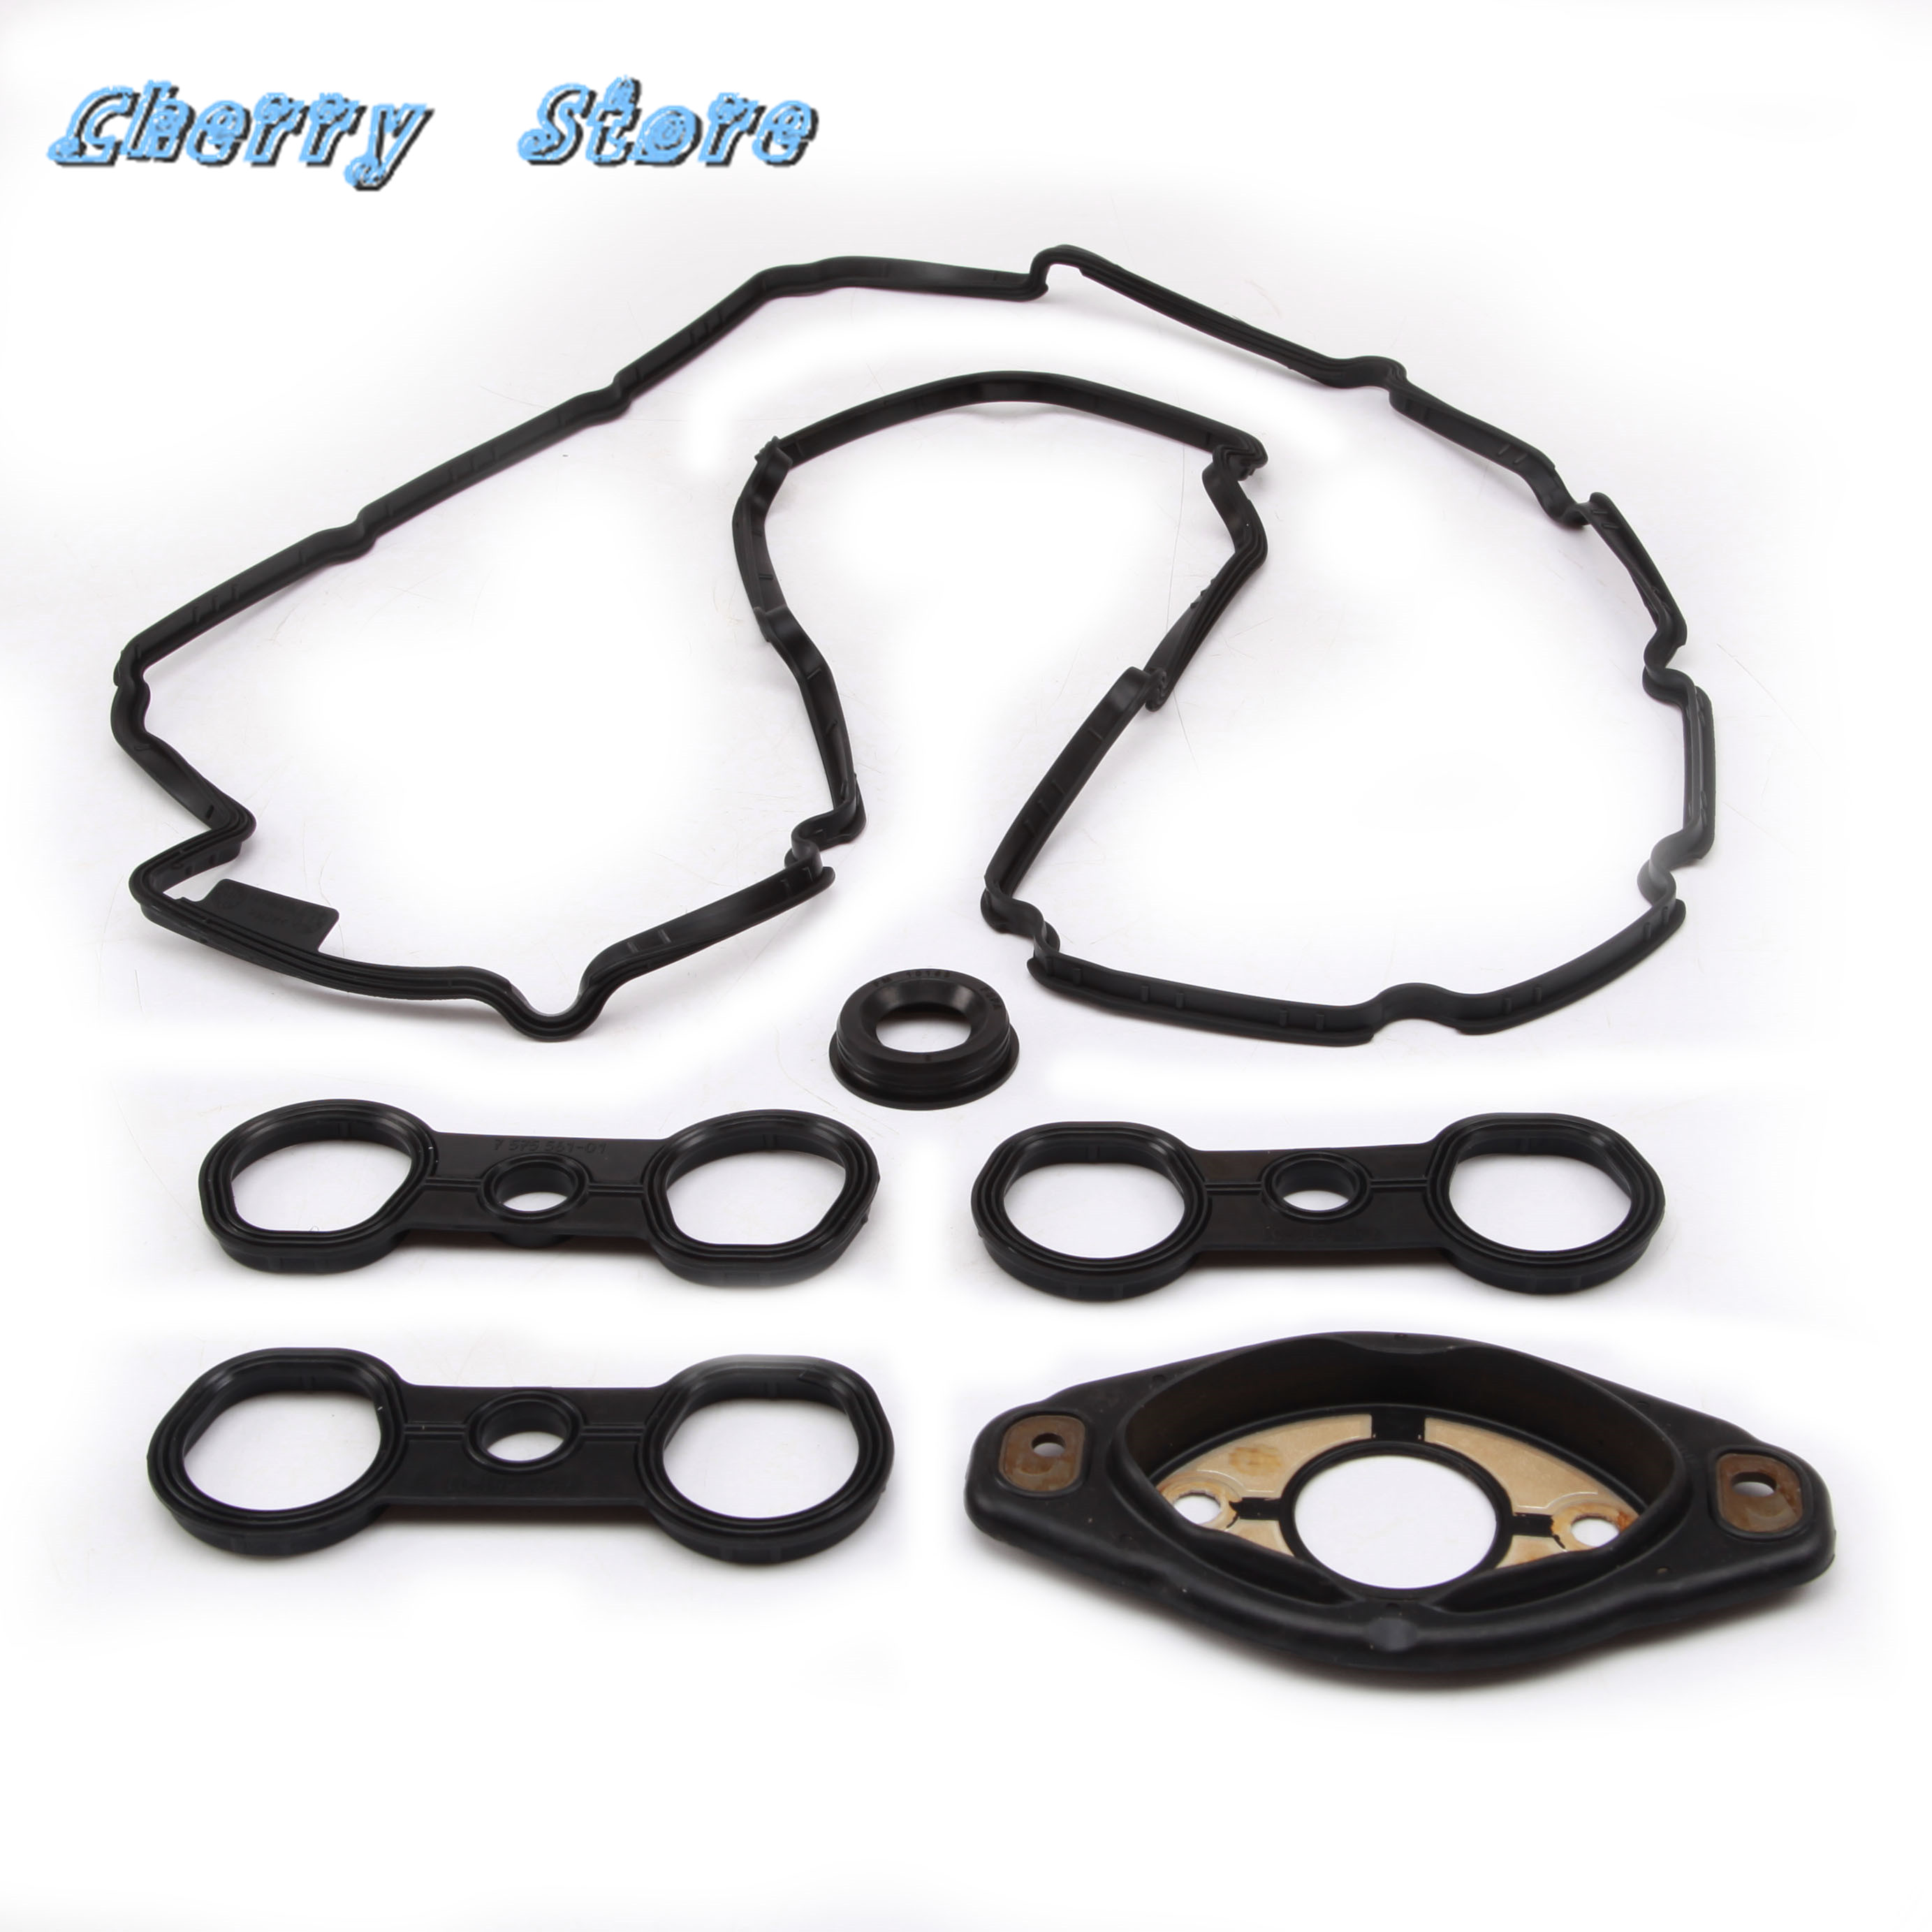 New 11 12 7 582 245 Valve Cover Gasket Set Genuine For BMW 128i 328i 528i xDrive 528xi X3 3.0si Z4 3.0i 11127559699 <font><b>11127552280</b></font> image